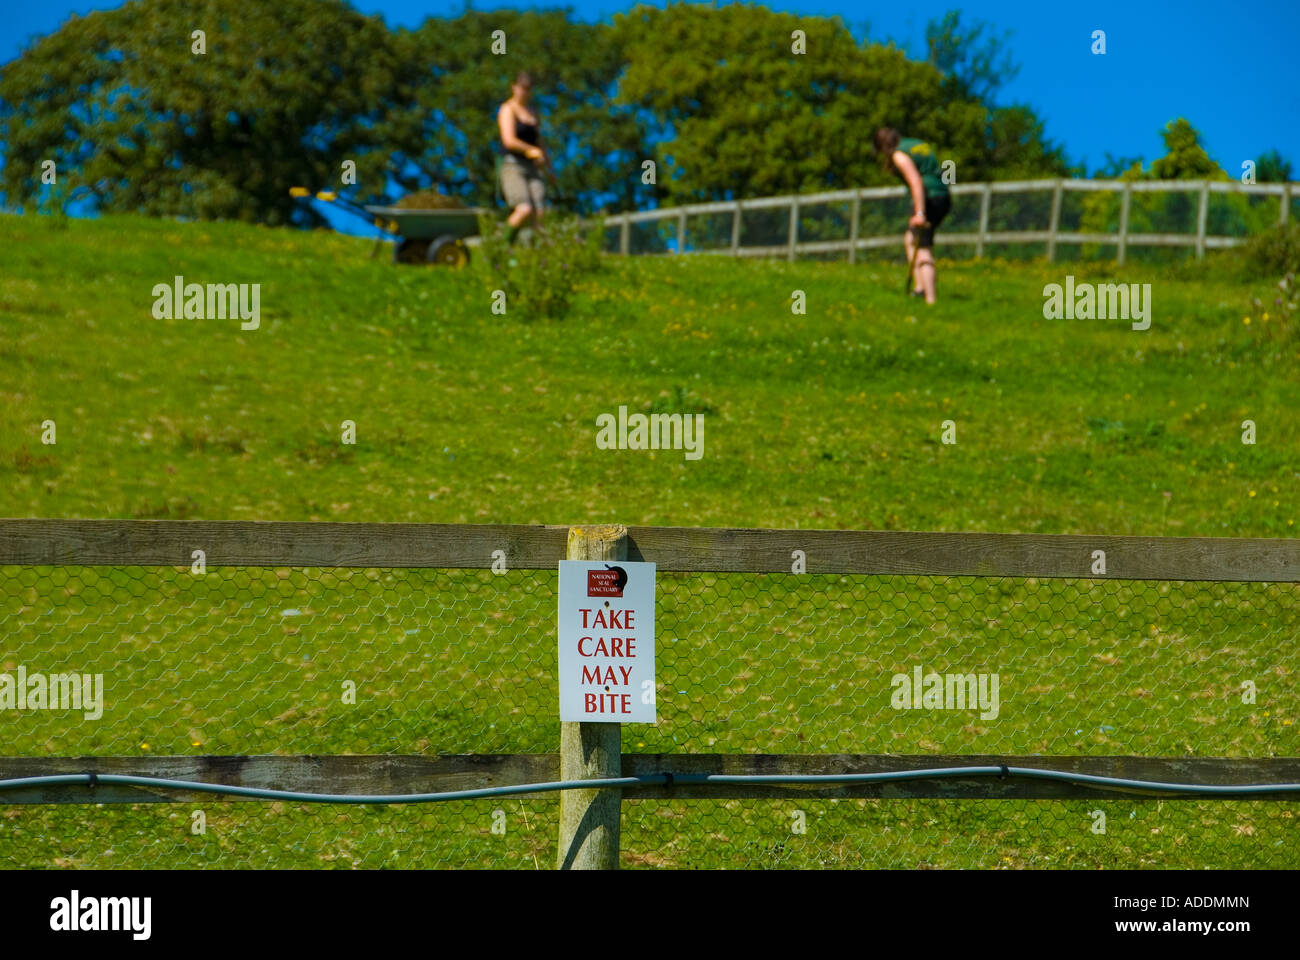 A Take care may Bite Sign on a fence with two young girls digging within the field instead of the usual livestock - Stock Image